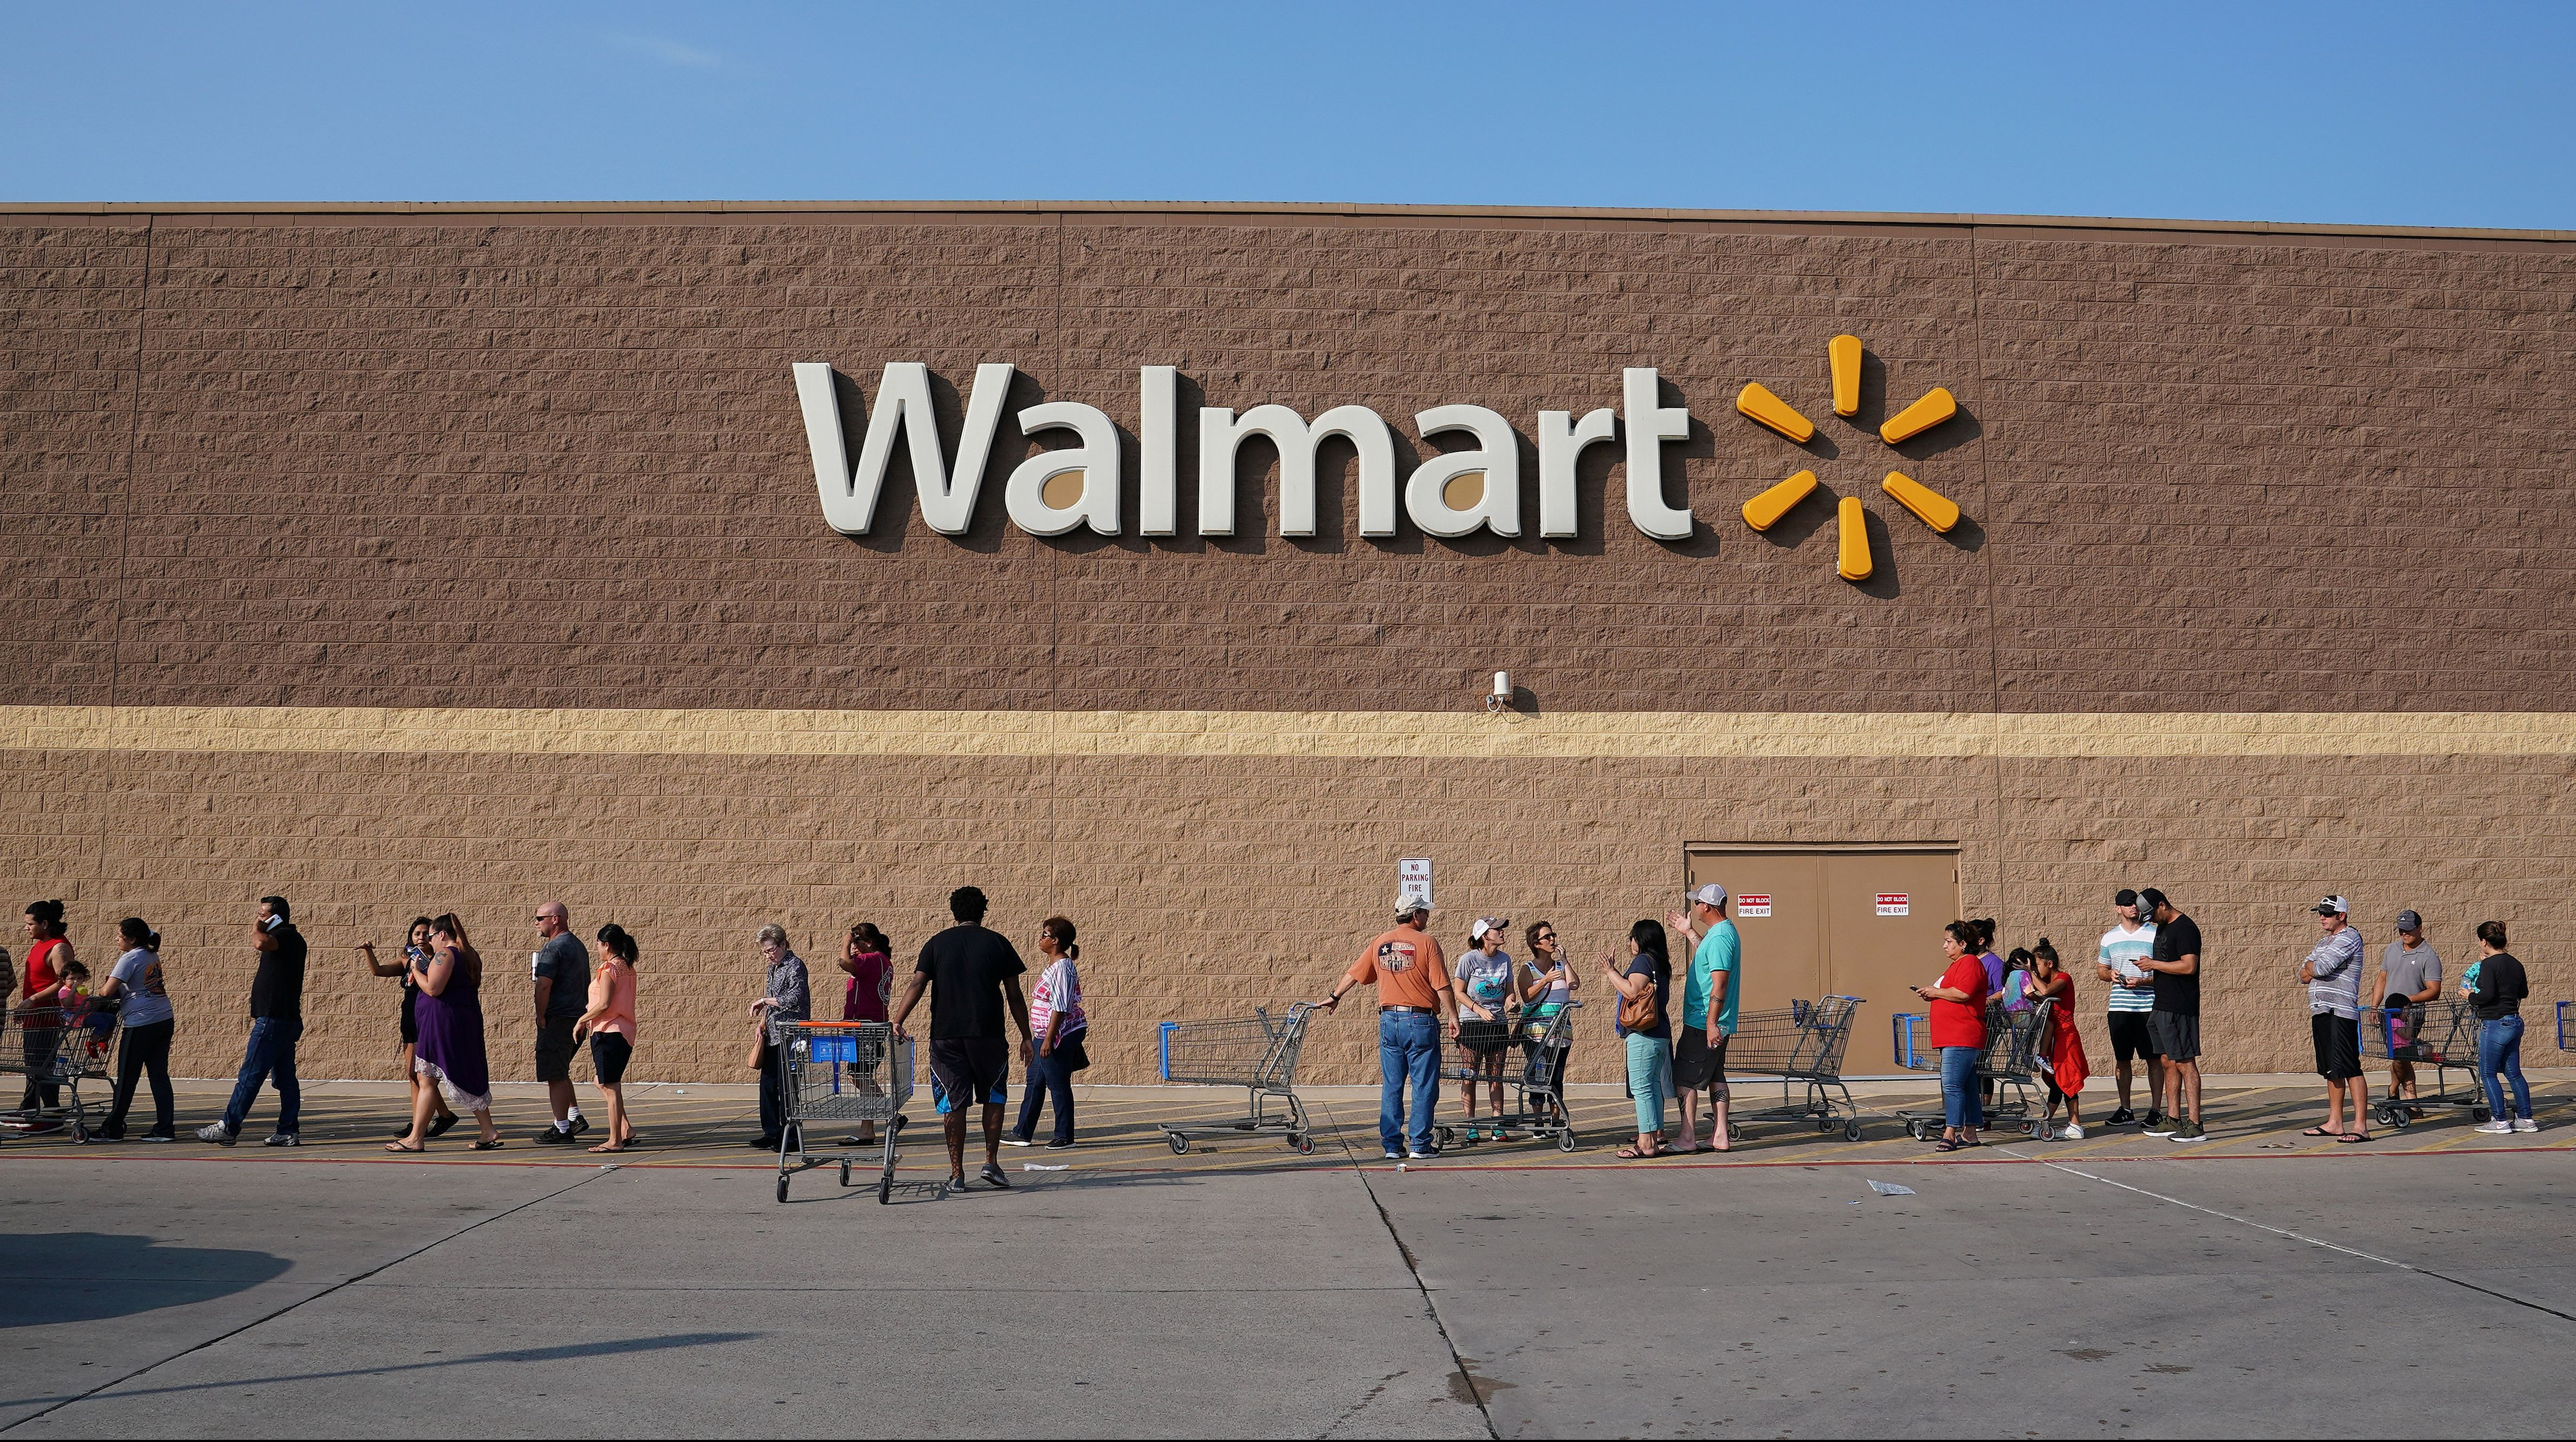 People line up at a Walmart store that reopened Friday after Tropical Storm Harvey in Port Arthur, Texas, U.S., September 1, 2017.